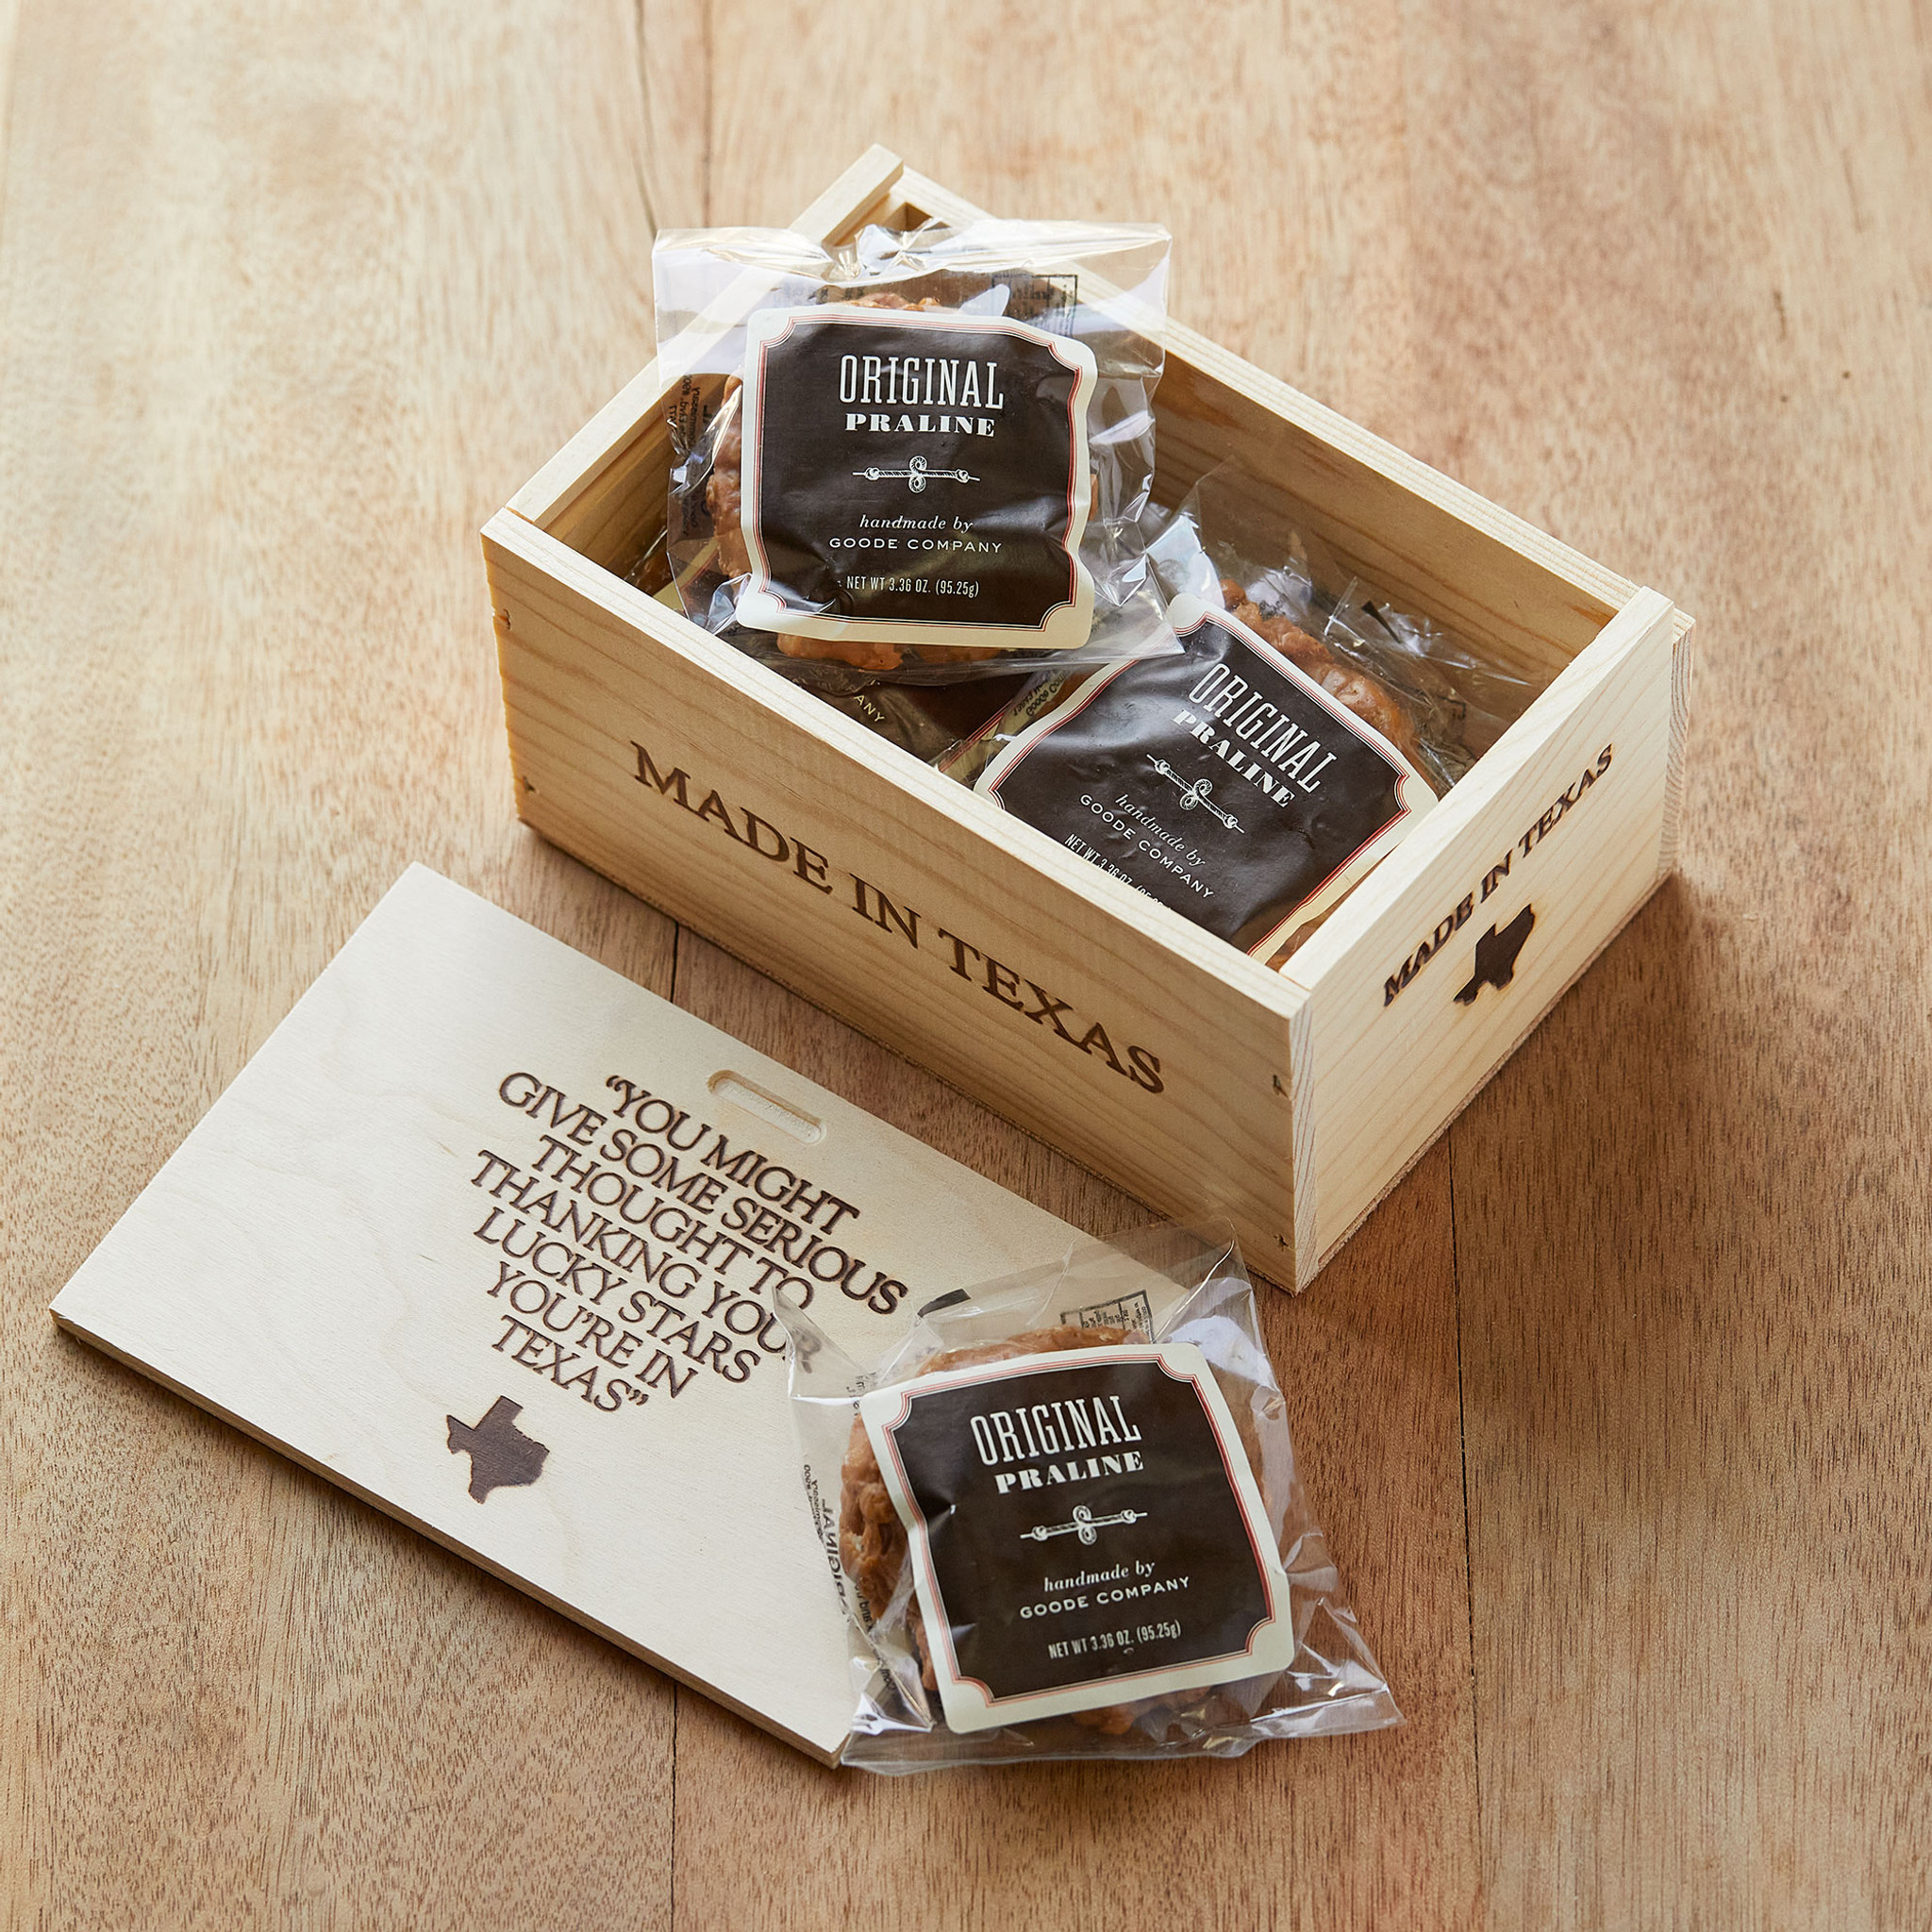 6 individually wrapped Original Pecan Praline Delight, packaged in a pine gift box.